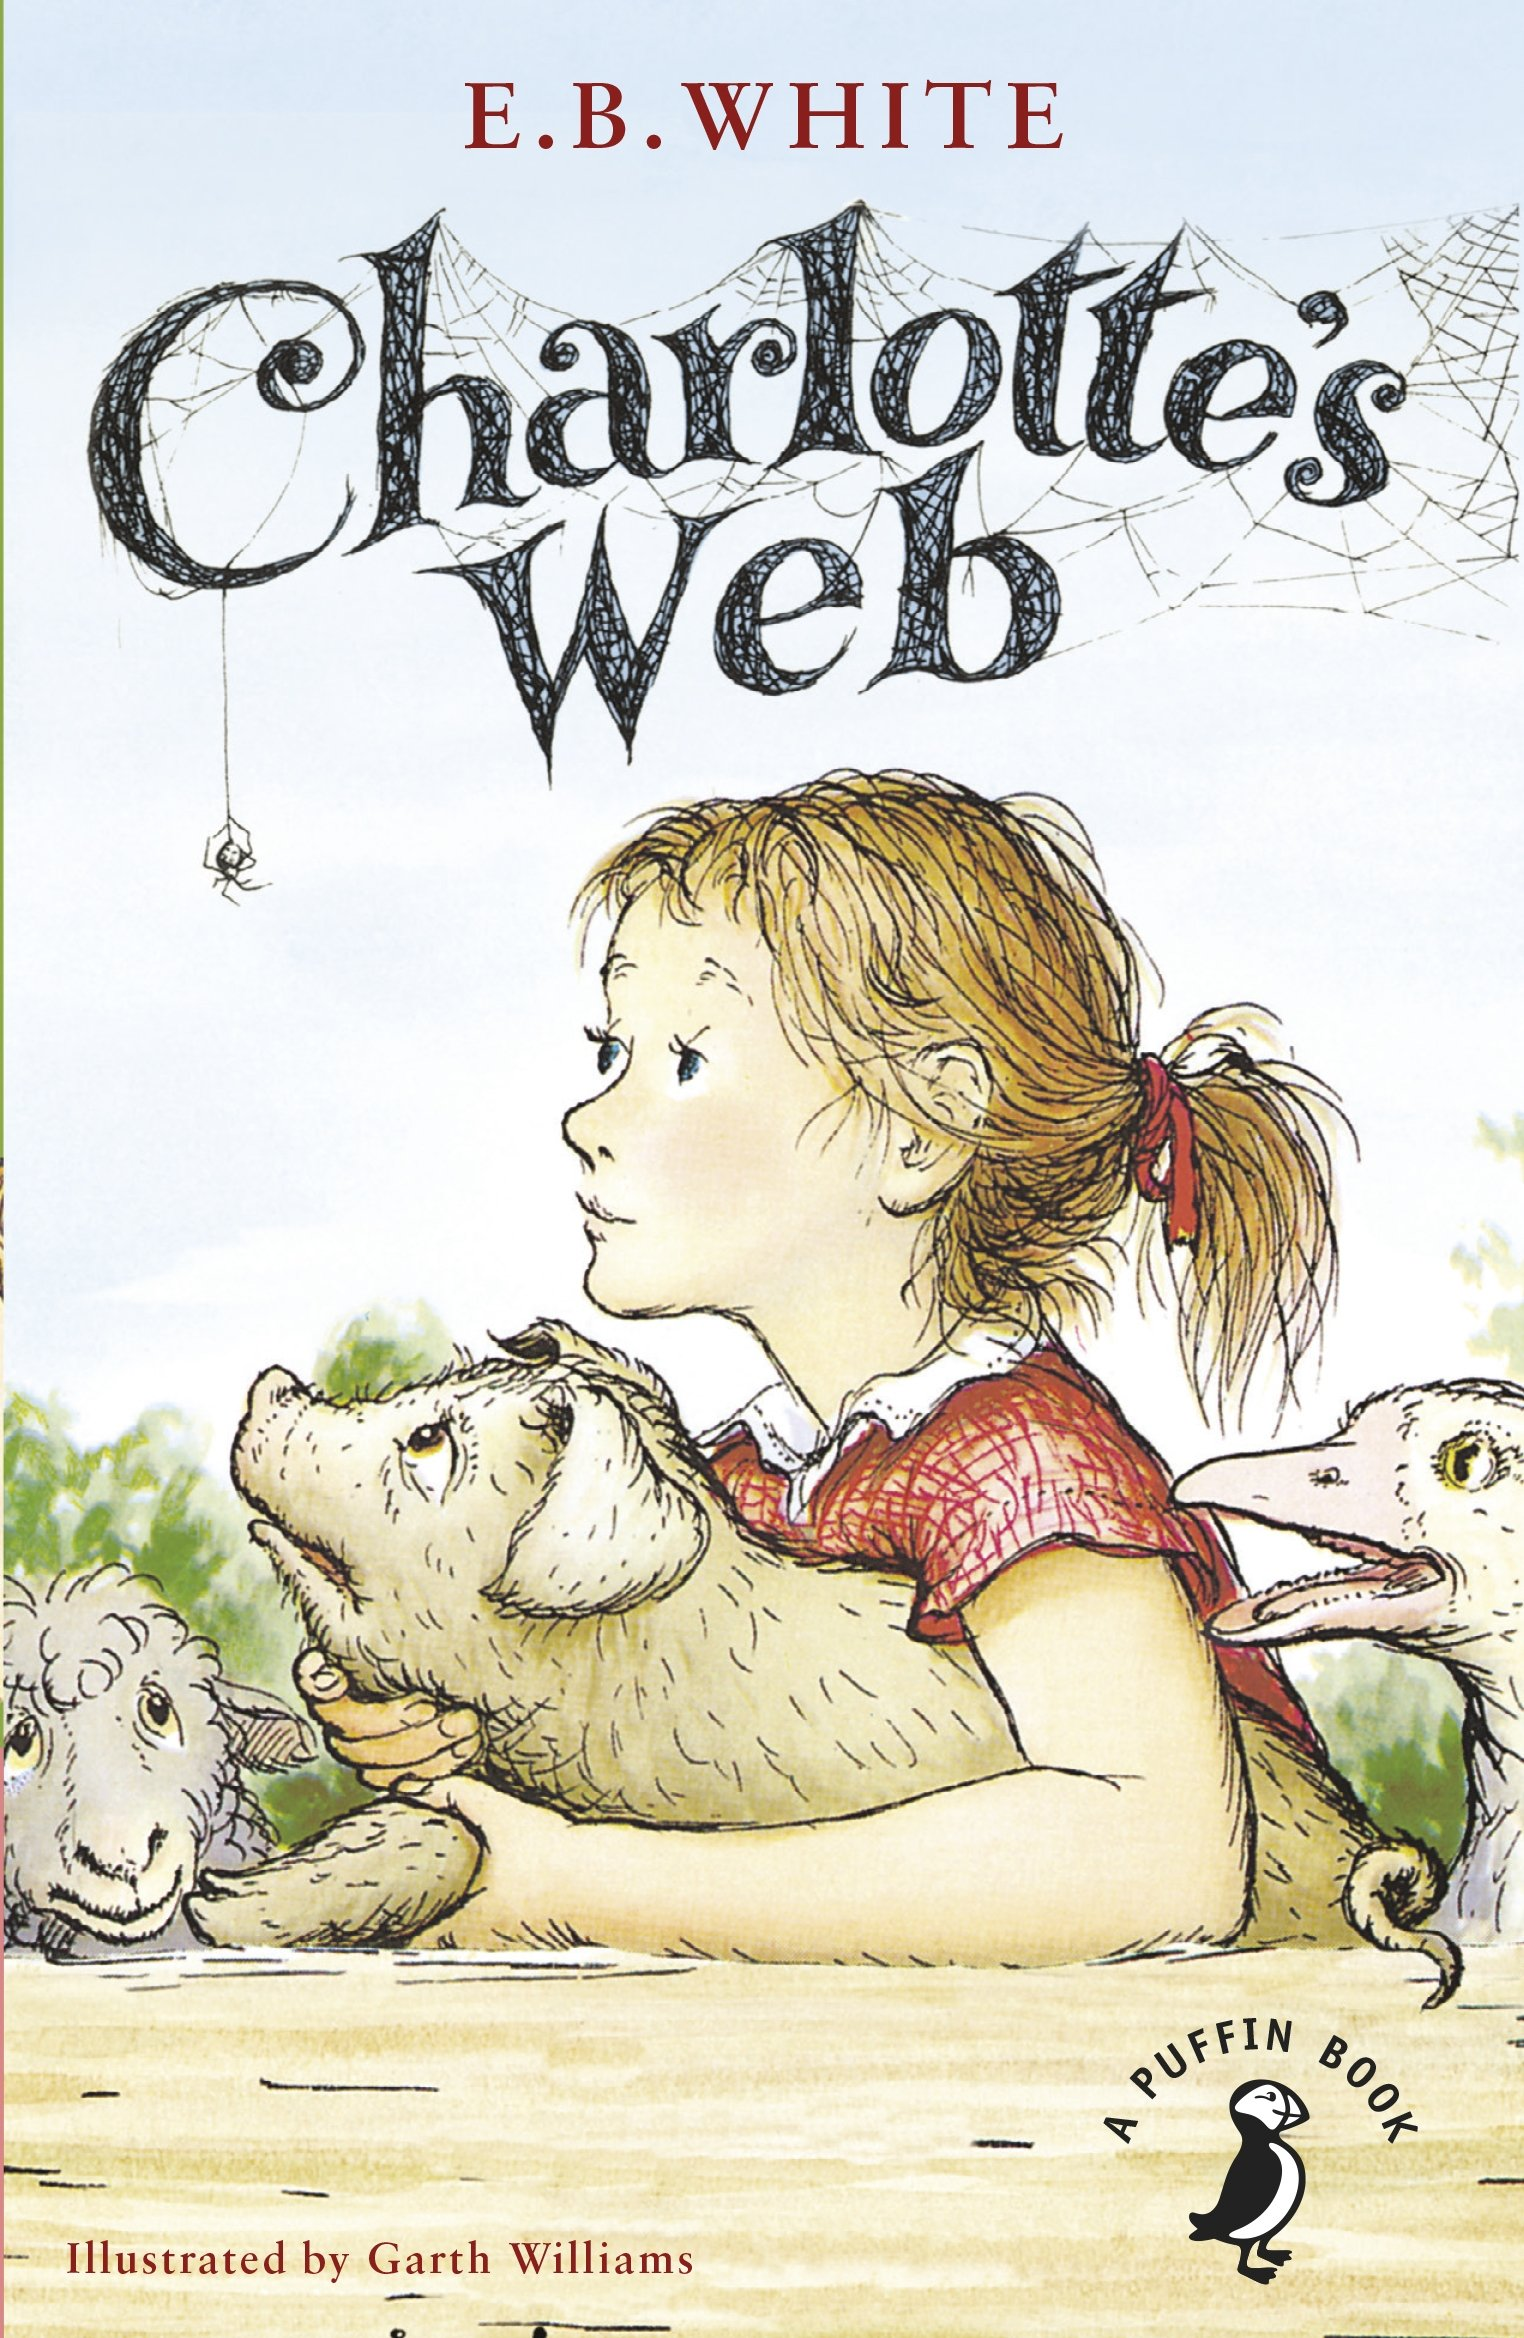 Charlotte's Web (A Puffin Book): Amazon.co.uk: White, E. B., Williams,  Garth: 9780141354828: Books